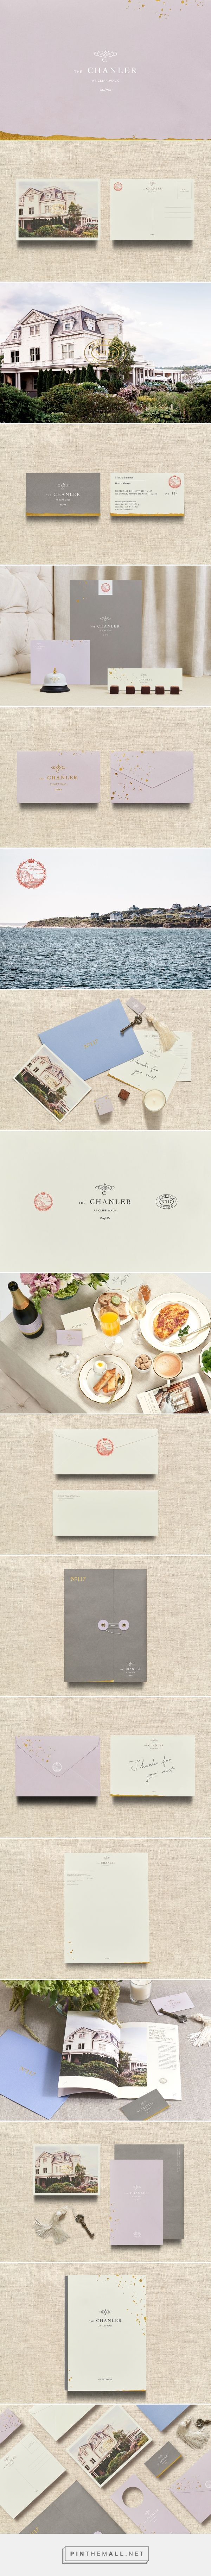 ✣ IDENTITY ✣ The Chanler by Anagrama Studio